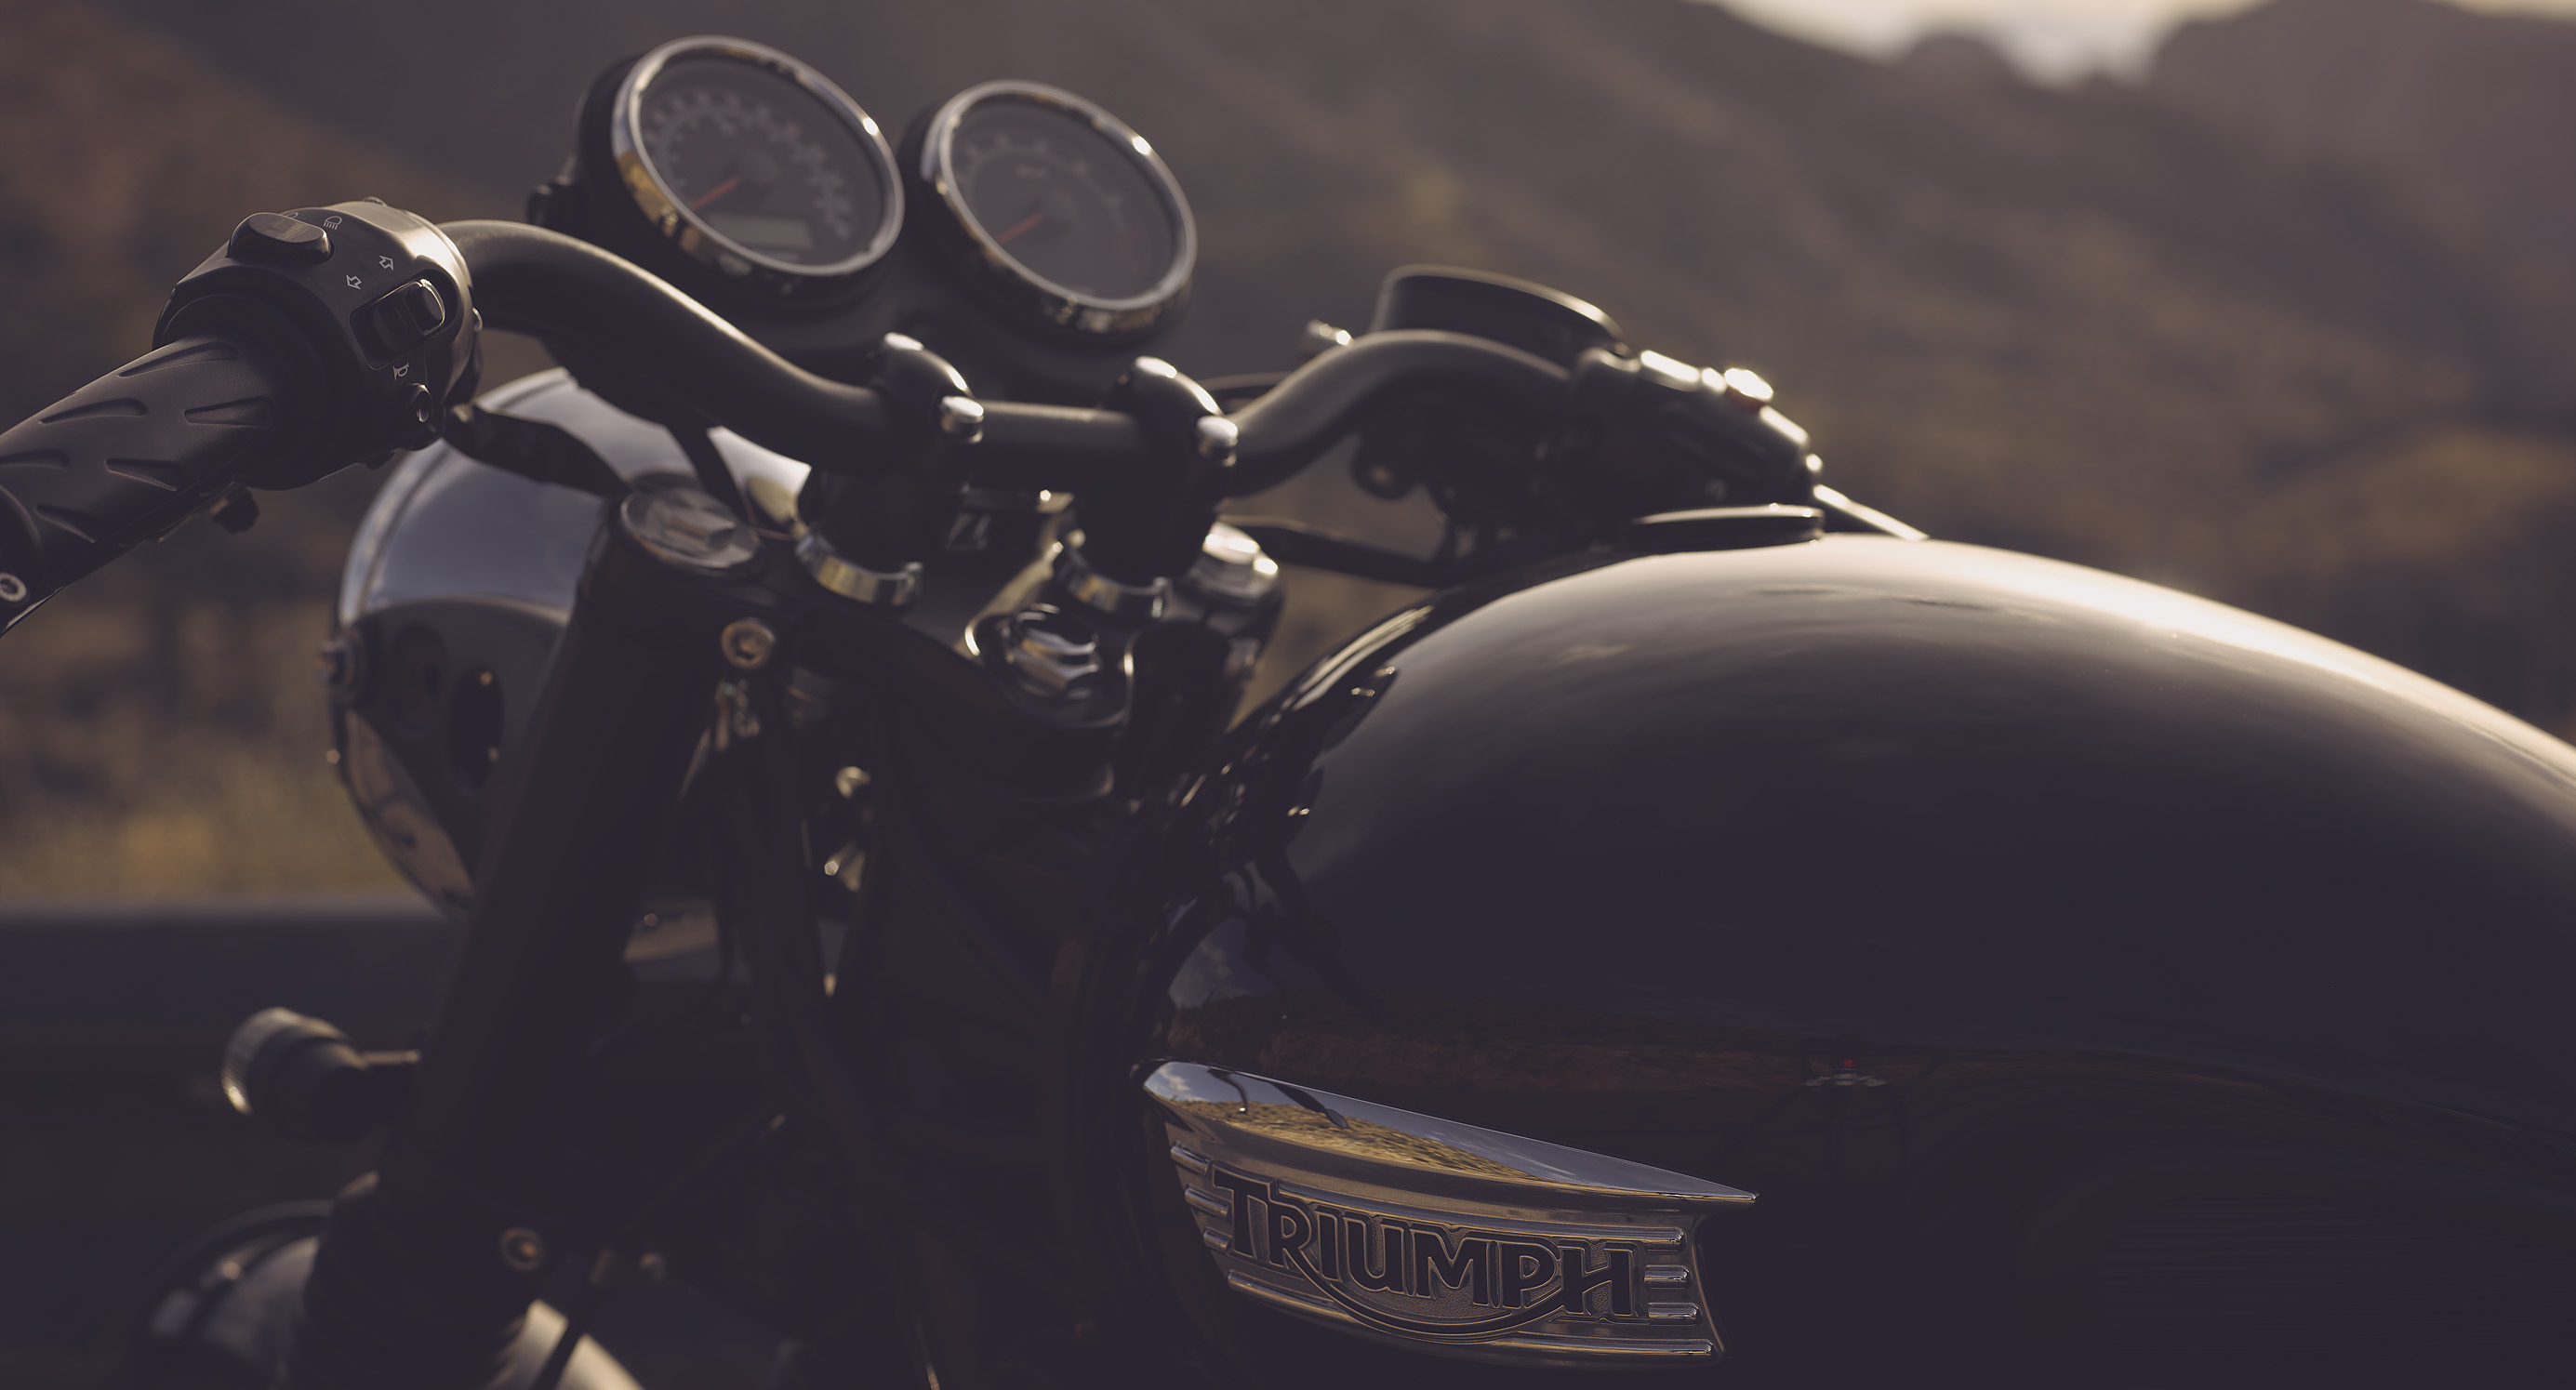 phoenix commercial photographer, tucson commercial photographer, motorsports photographer, arizona commercial photographer, commercial photography phoenix az, triumph motorcycles photography, triumph motorcycles